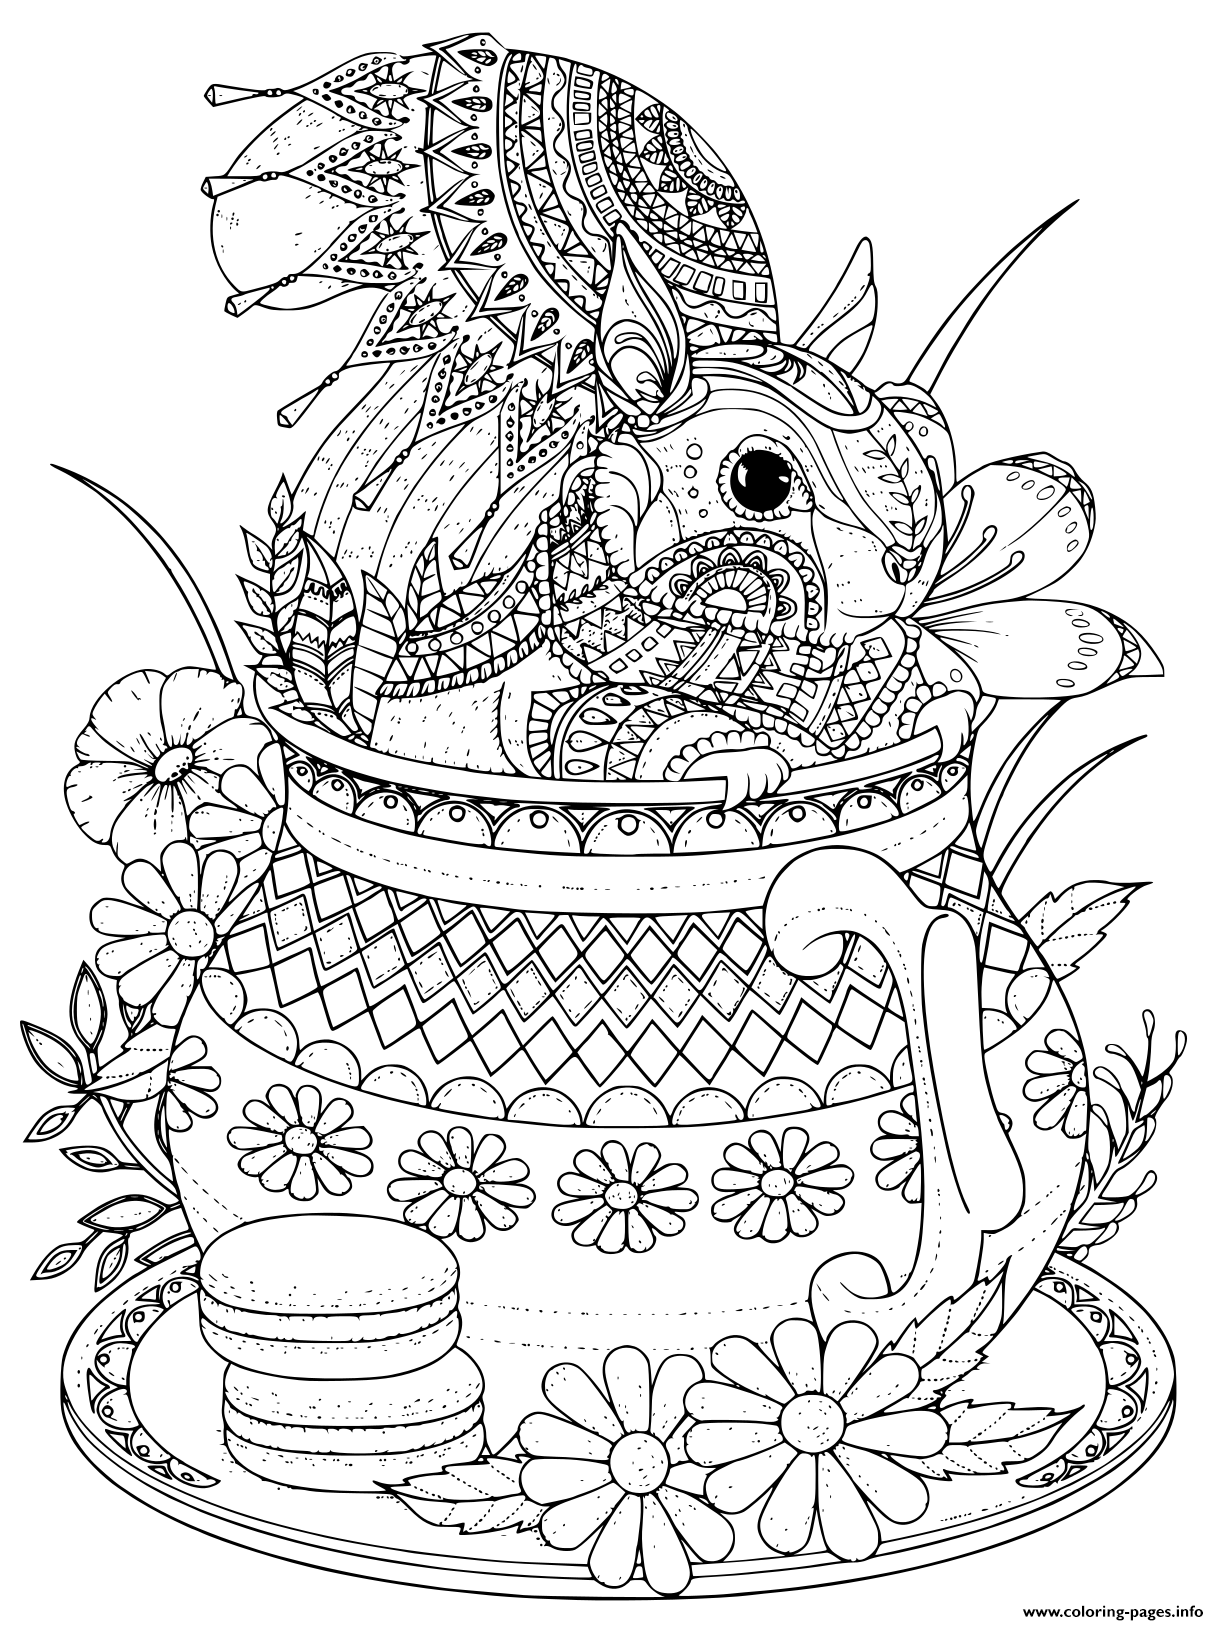 coloring pages of squirrels free squirrel coloring pages squirrels pages of coloring